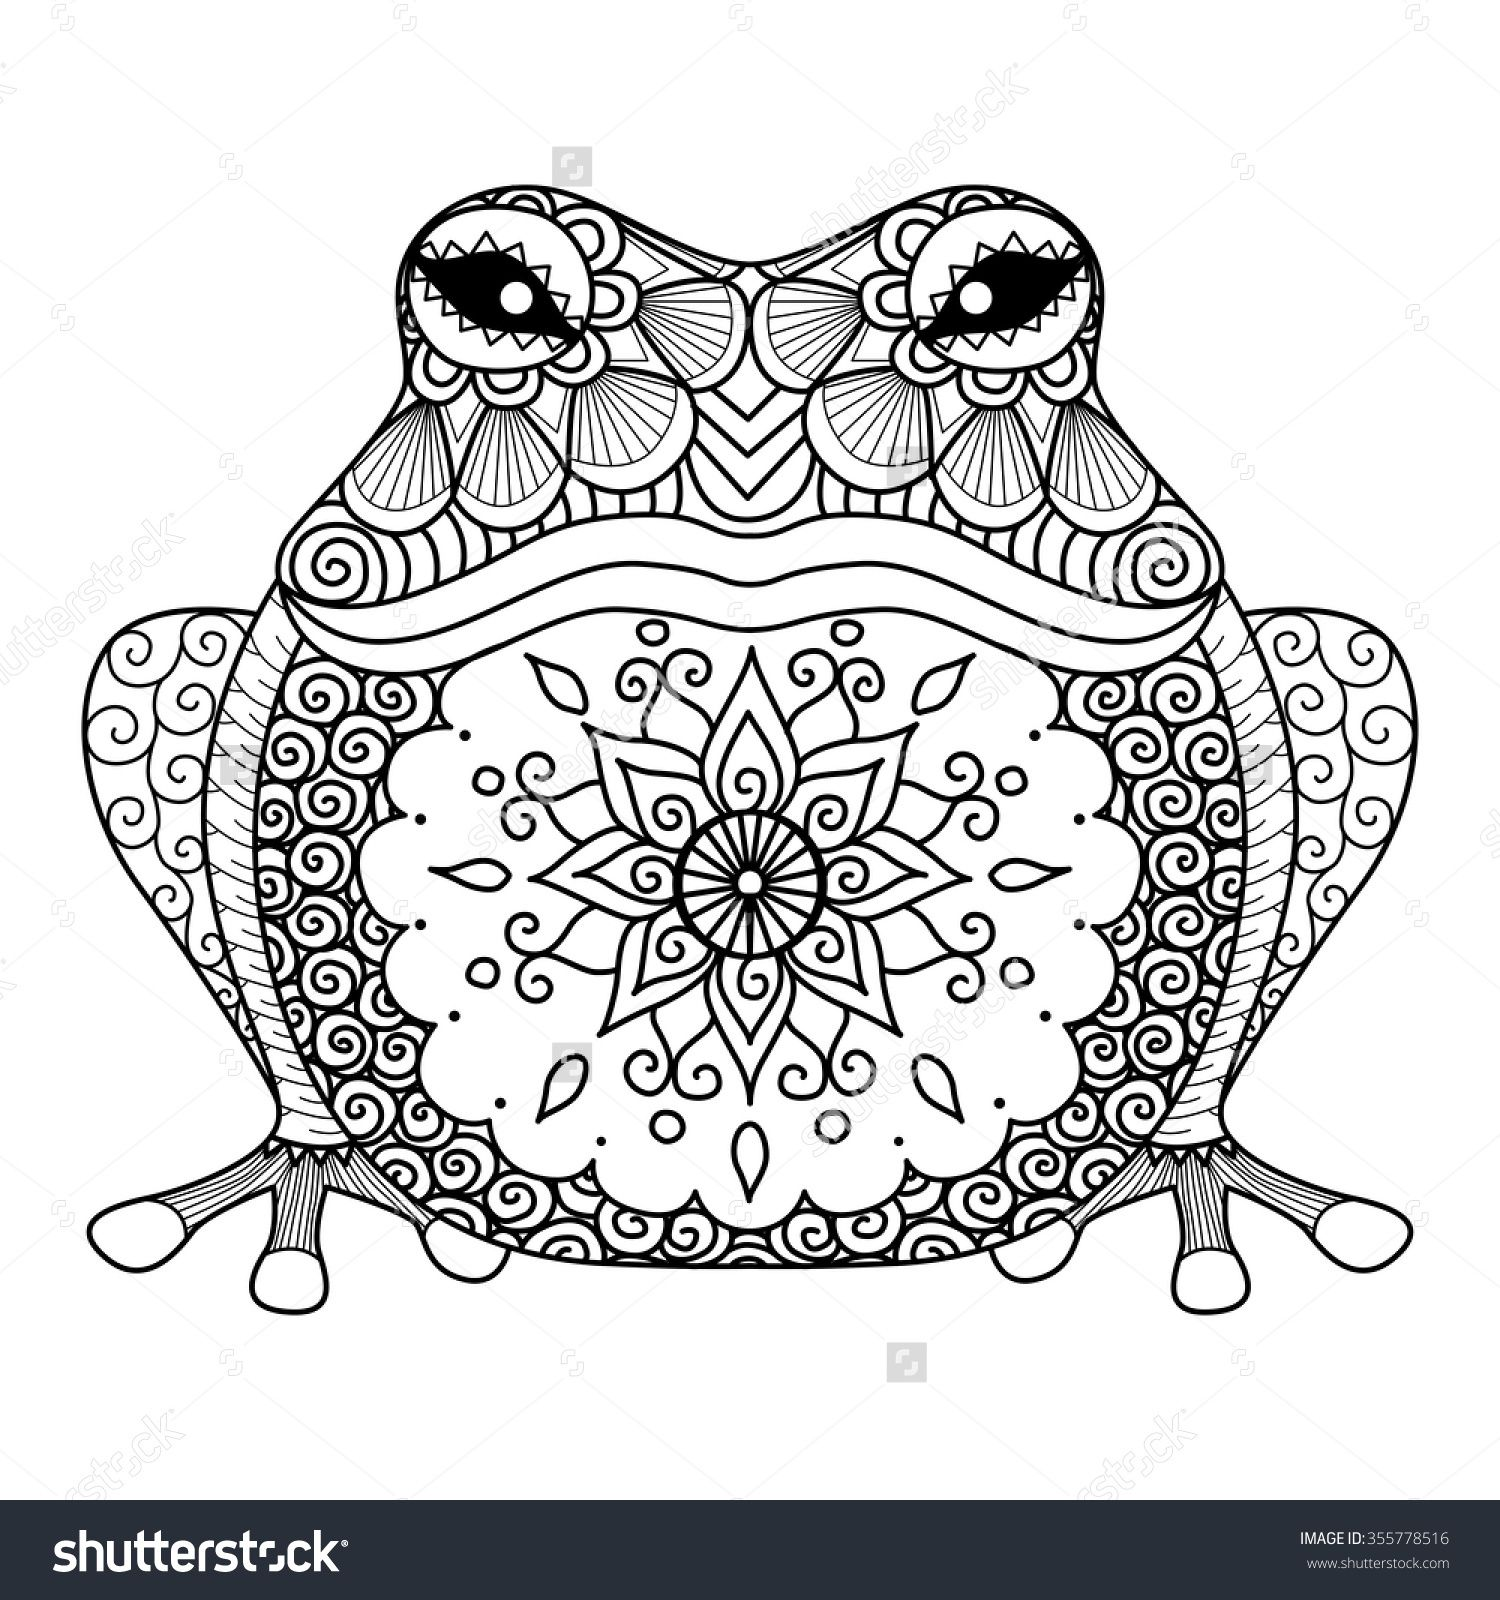 Hand drawn zentangle frog for coloring book for adult, shirt design ...